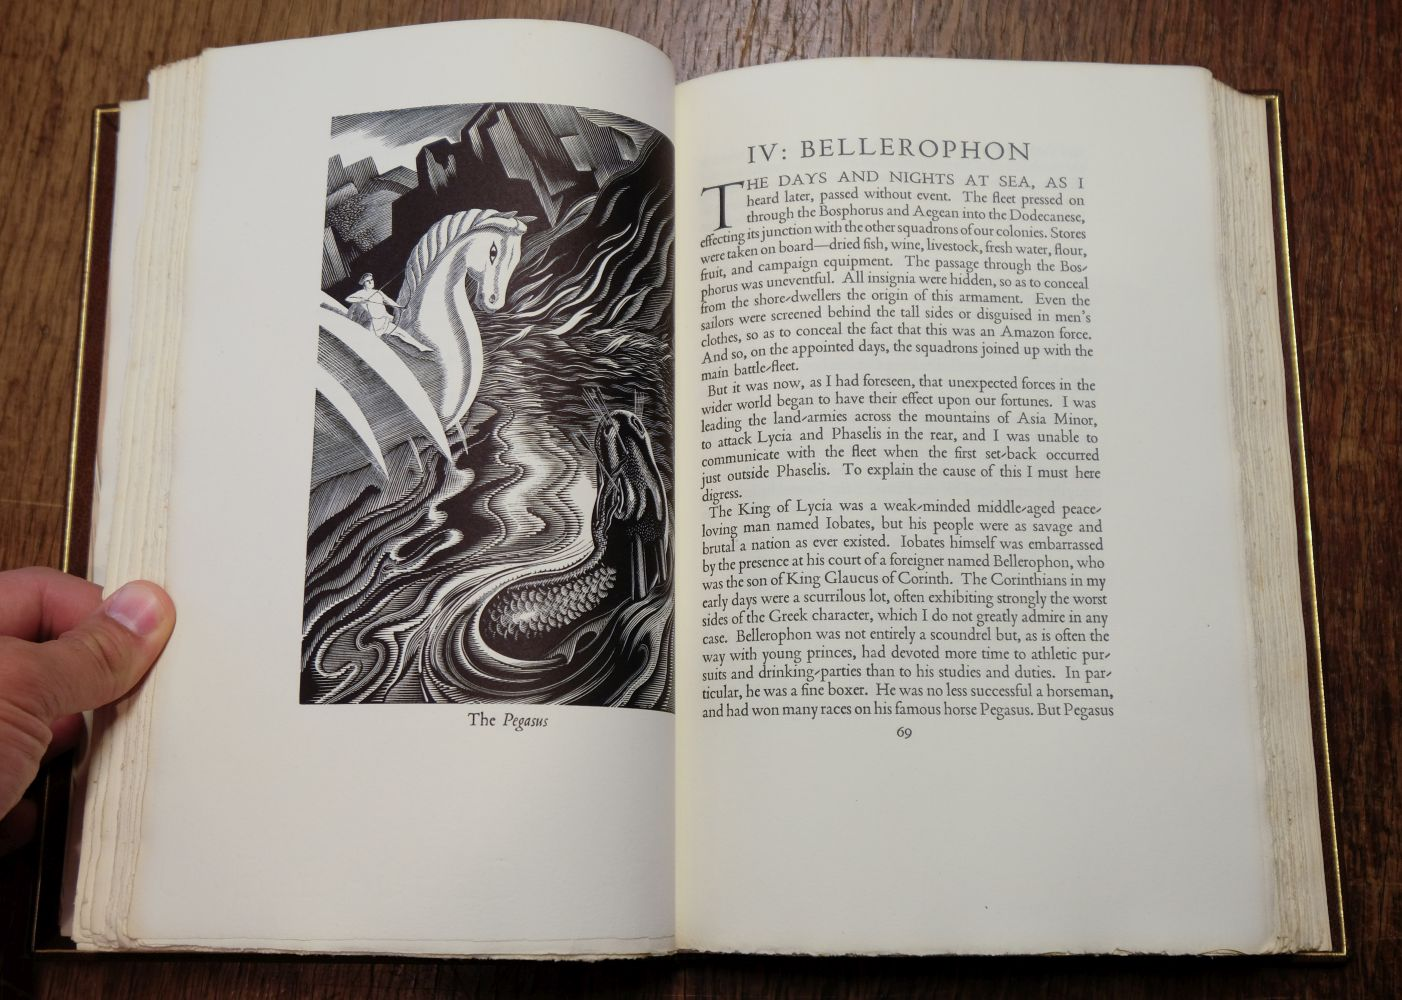 Golden Cockerel Press. The Amazons, A Novel by Ivor Bannet, 1948, signed in special binding - Image 6 of 8